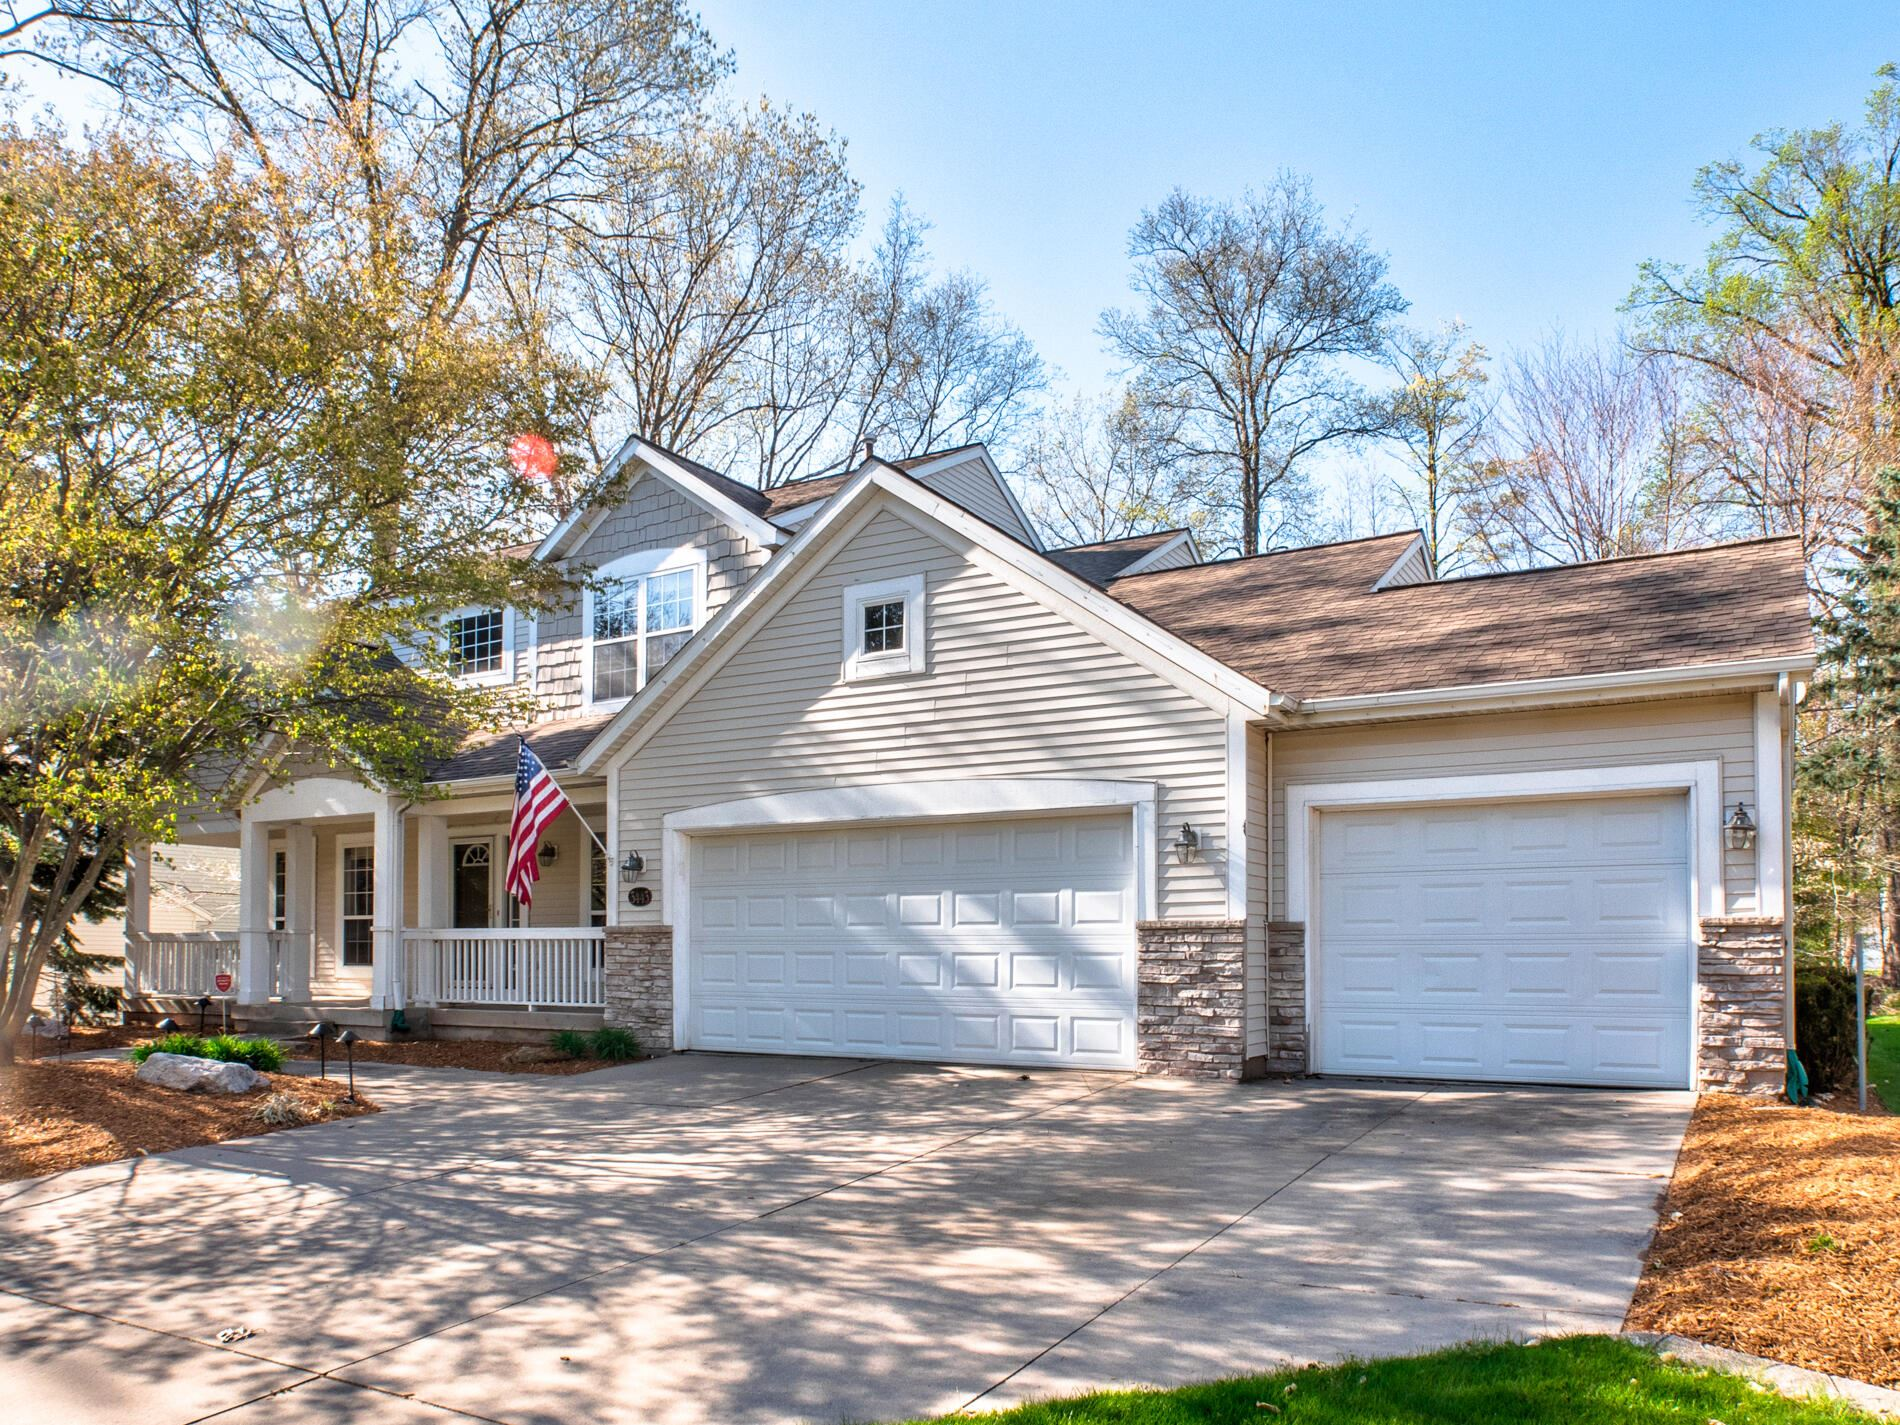 3443 Meadowgrove Drive SE, Kentwood, MI 49512 - MLS#: 21014987